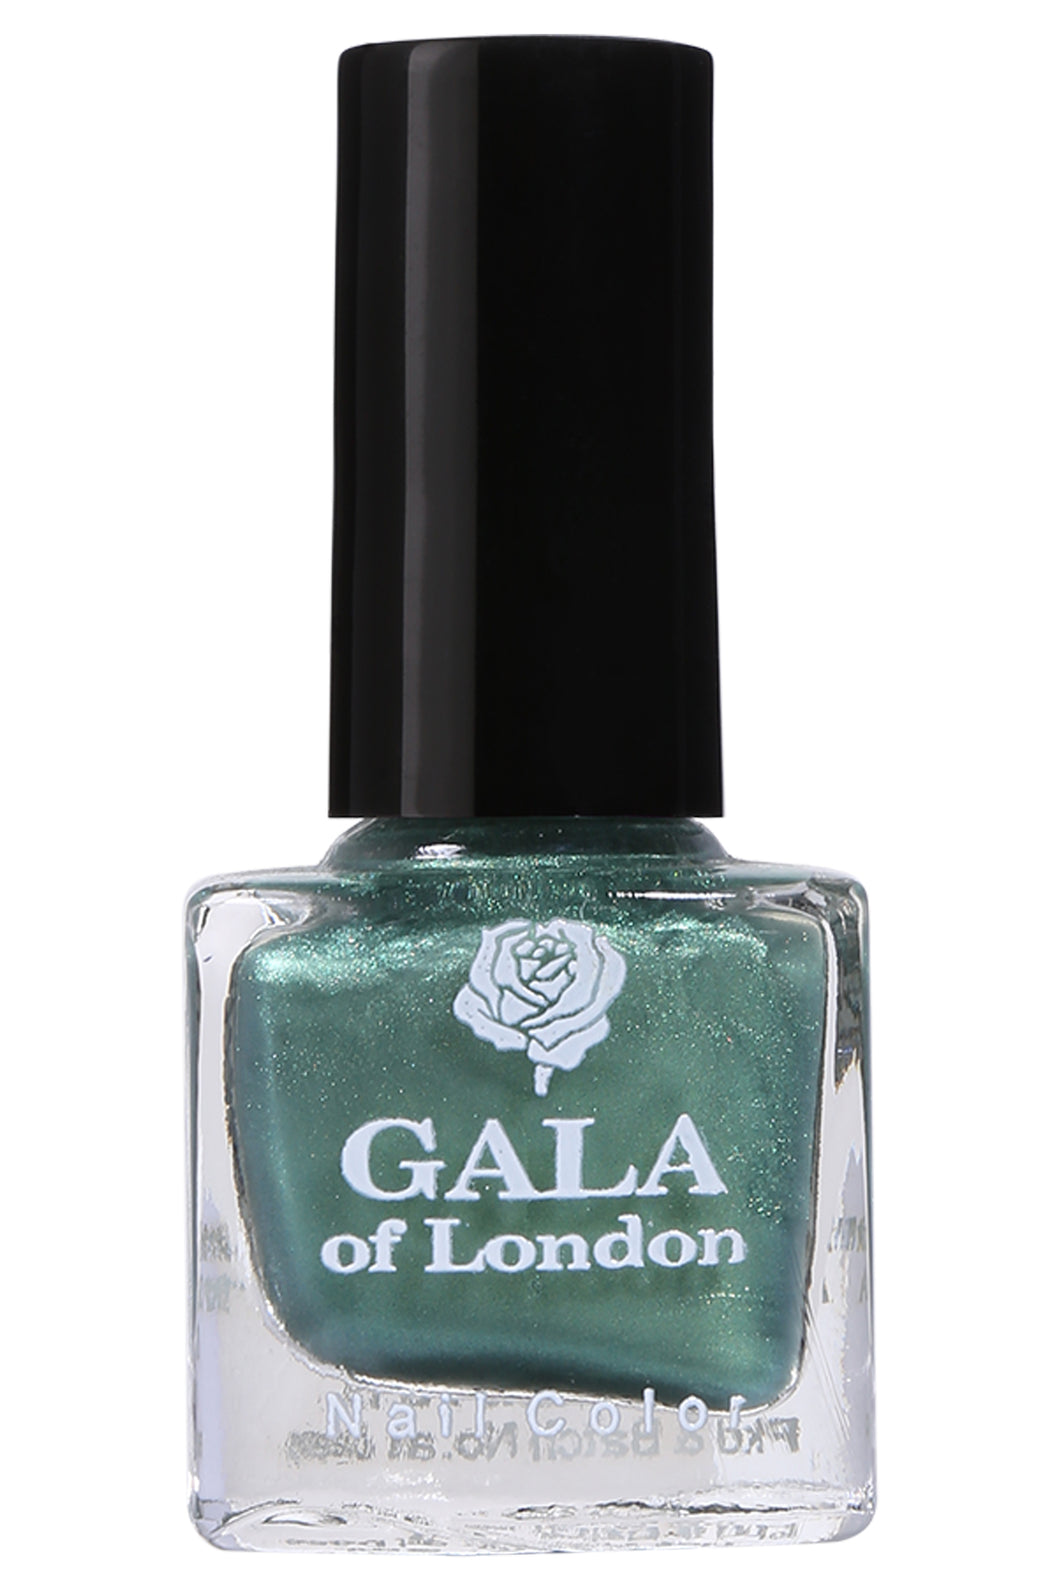 Gala of London S Series Nail Polish - Green Glossy S15